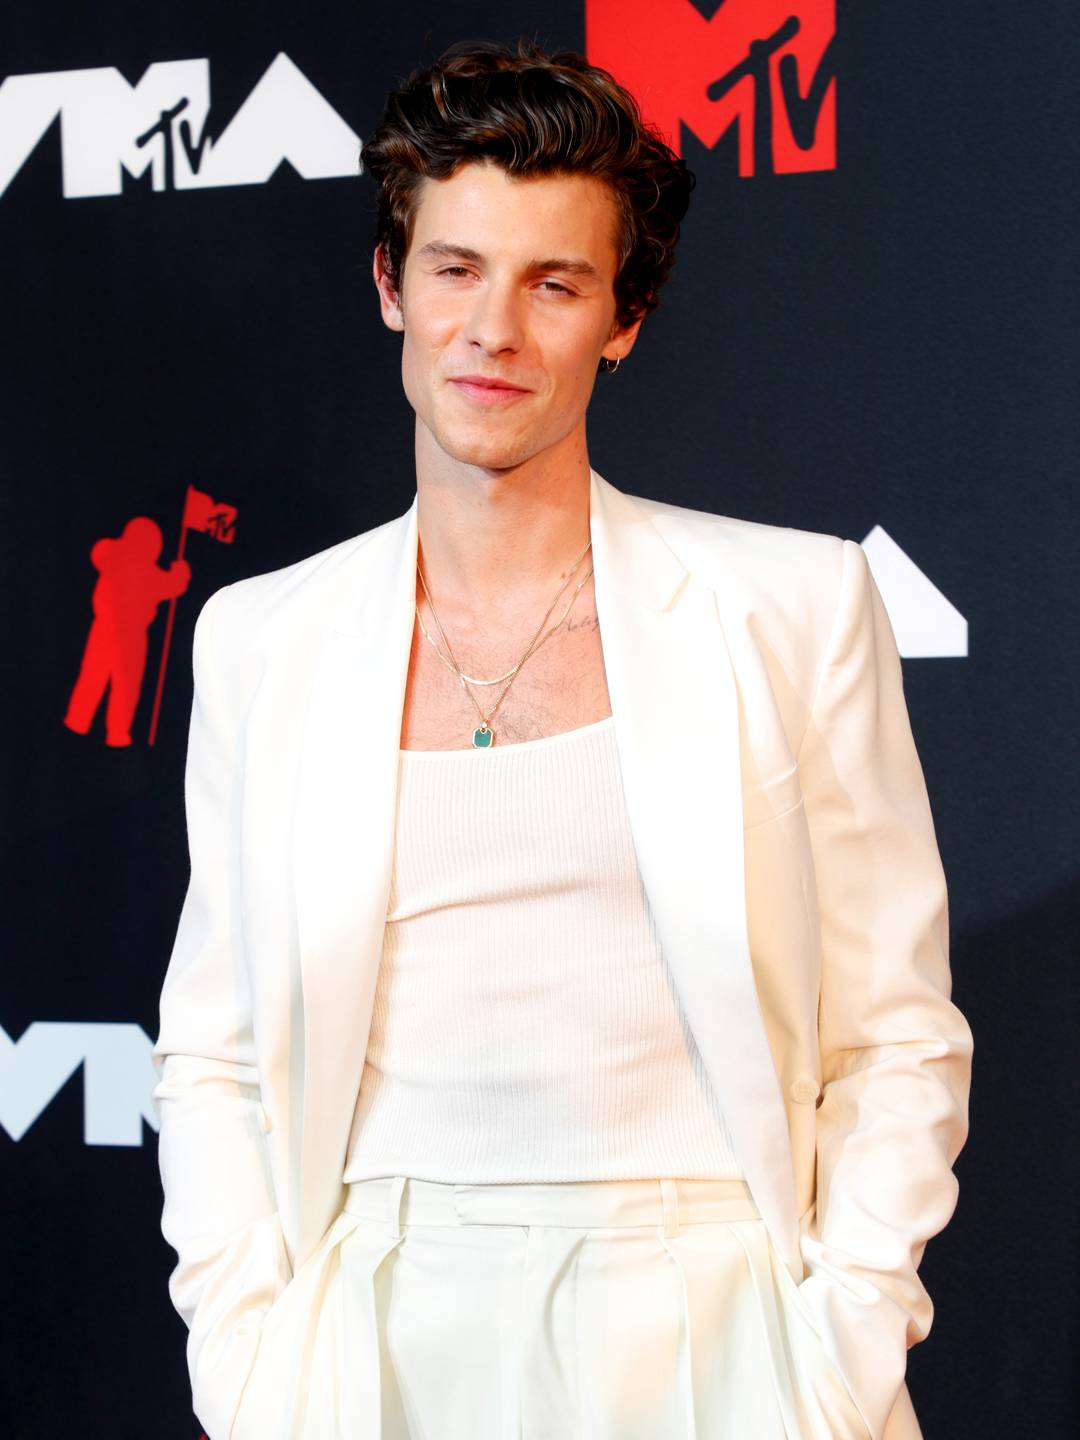 MTV Video Music Awards 2021 | The Best of the VMAs 2021 Red Carpet | Shawn Mendes | 1080x1440